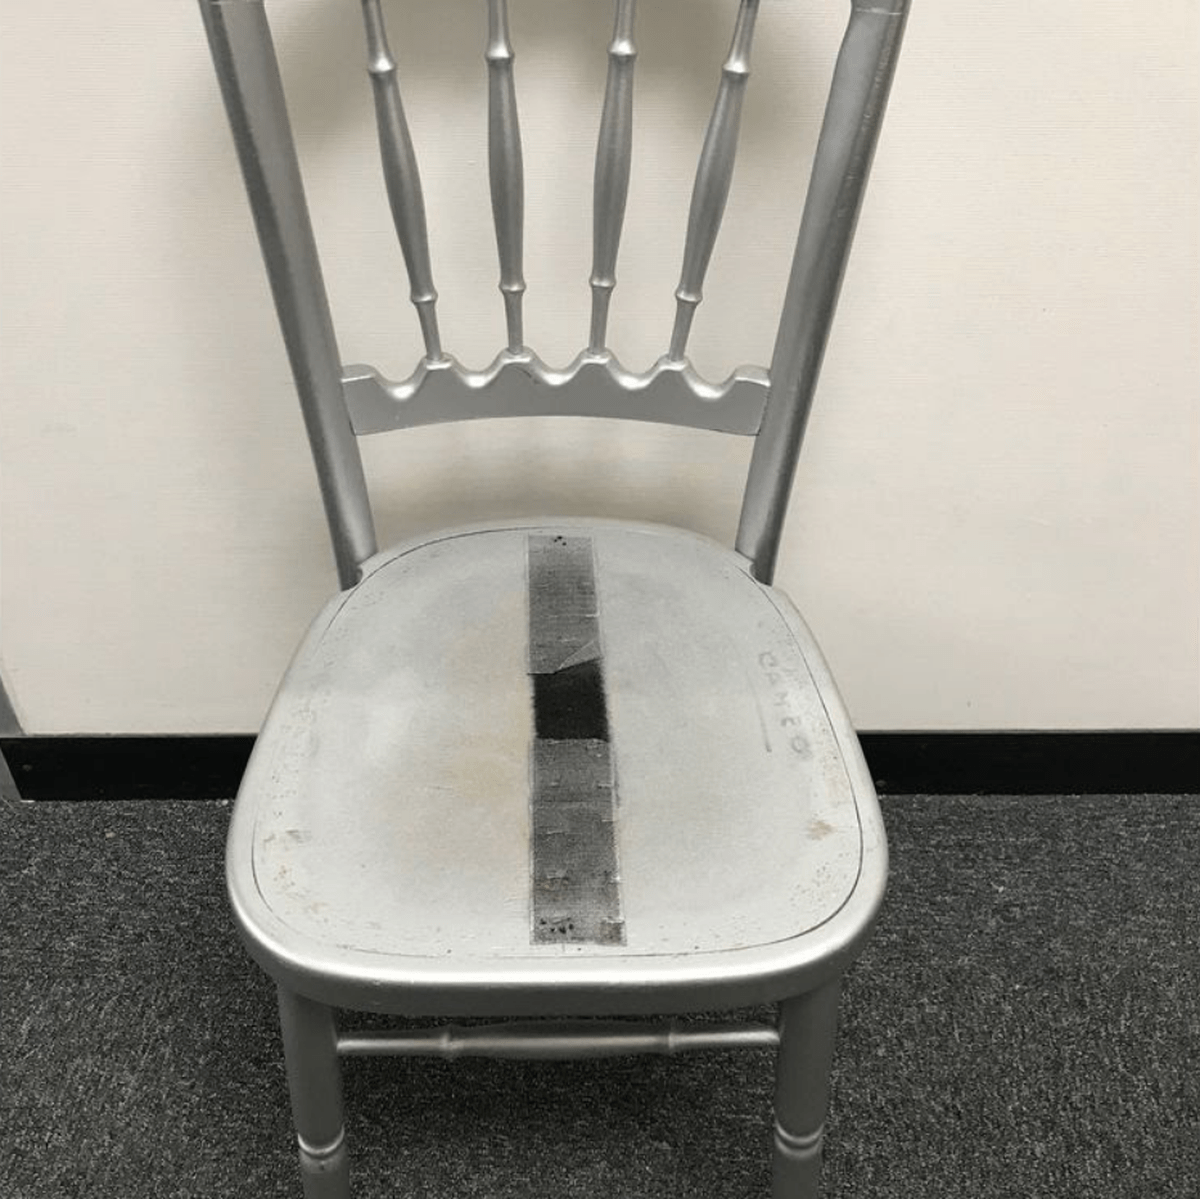 hotel chairs for sale outside chair lifts secondhand furniture banqueting 150x